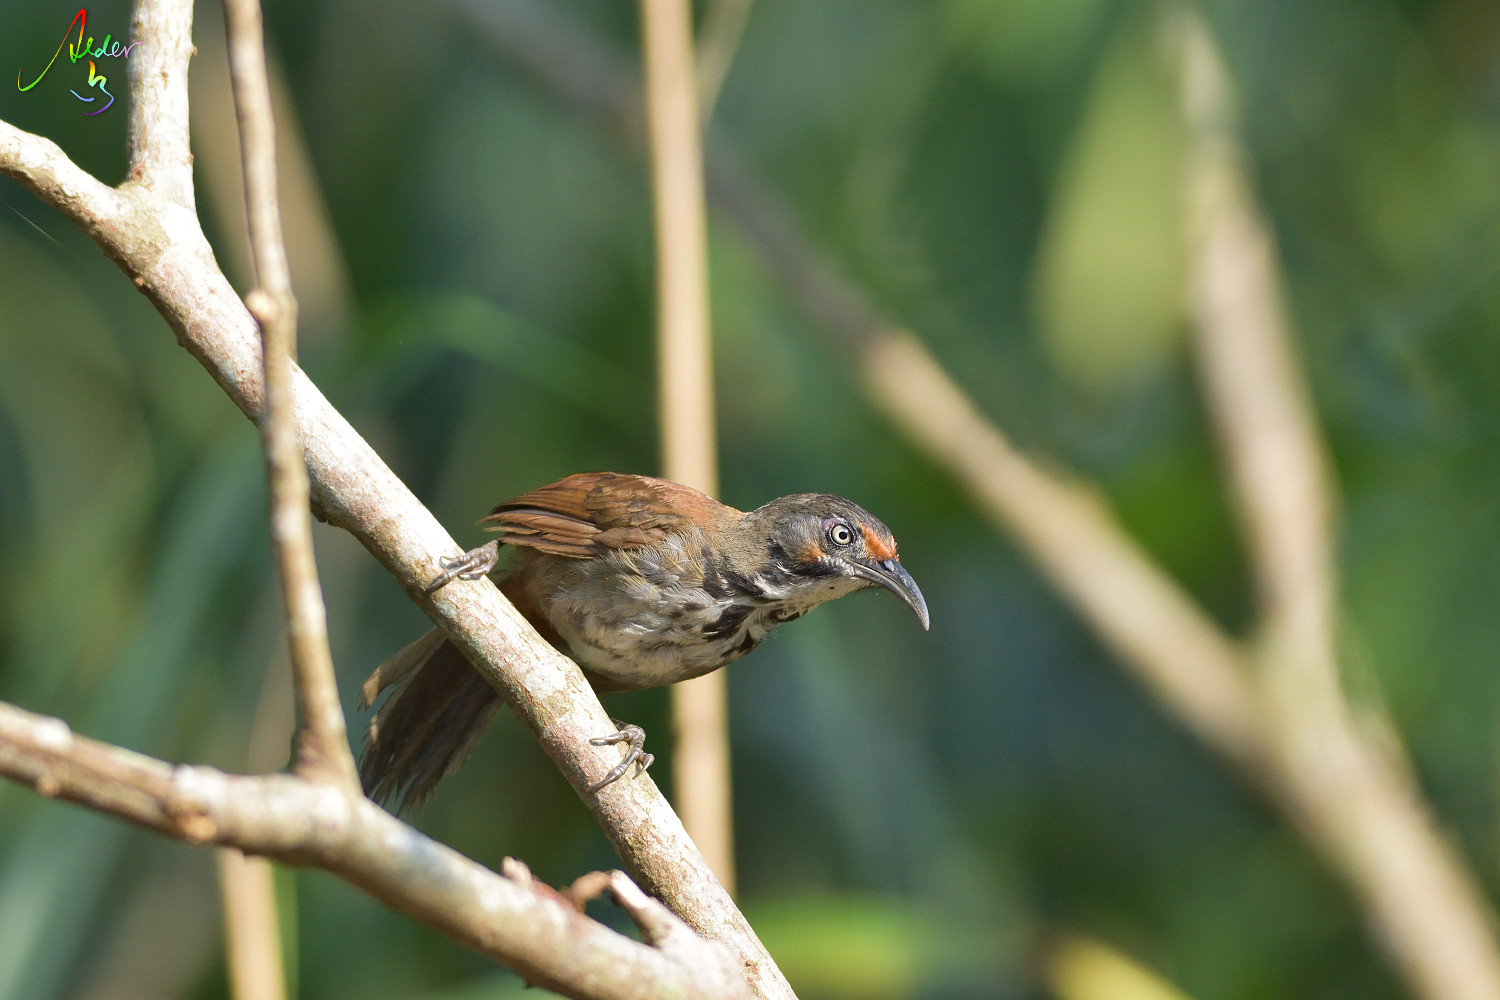 Rusty-cheeked_Scimitar_Babbler_4343